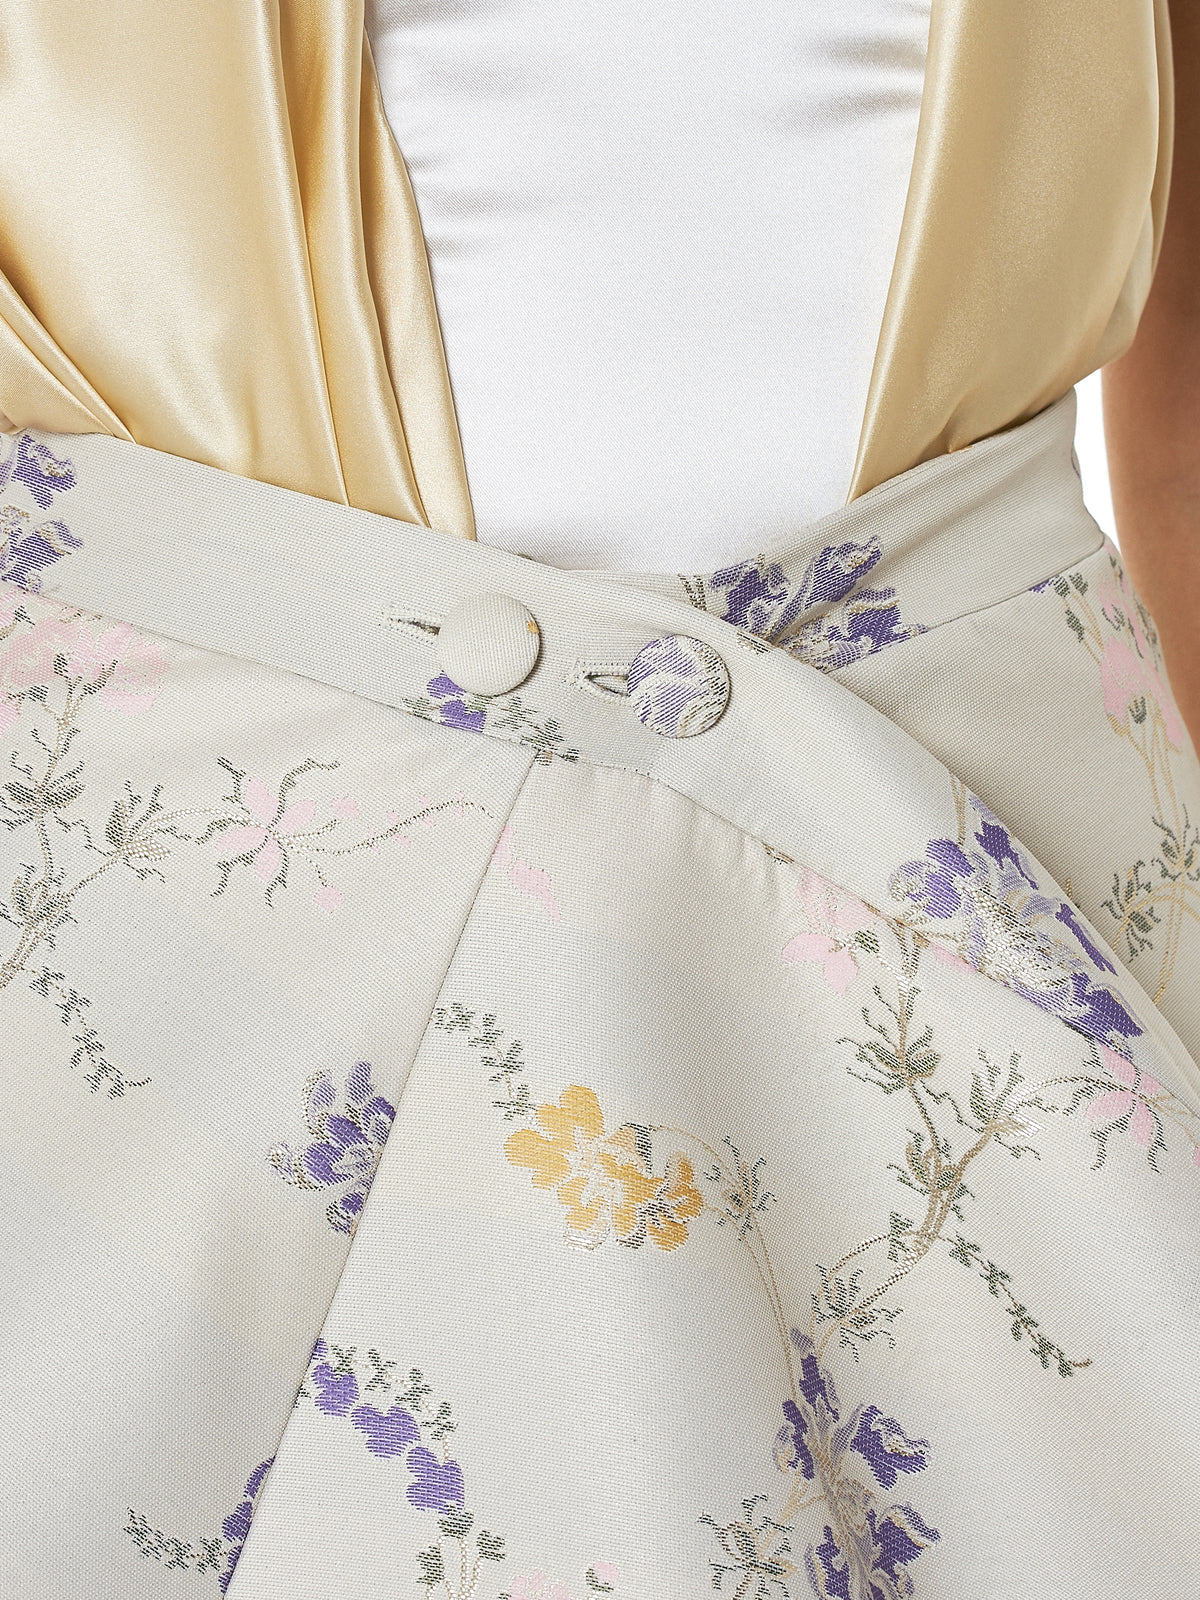 Y/Project Floral Skirt - Hlorenzo Detail 2